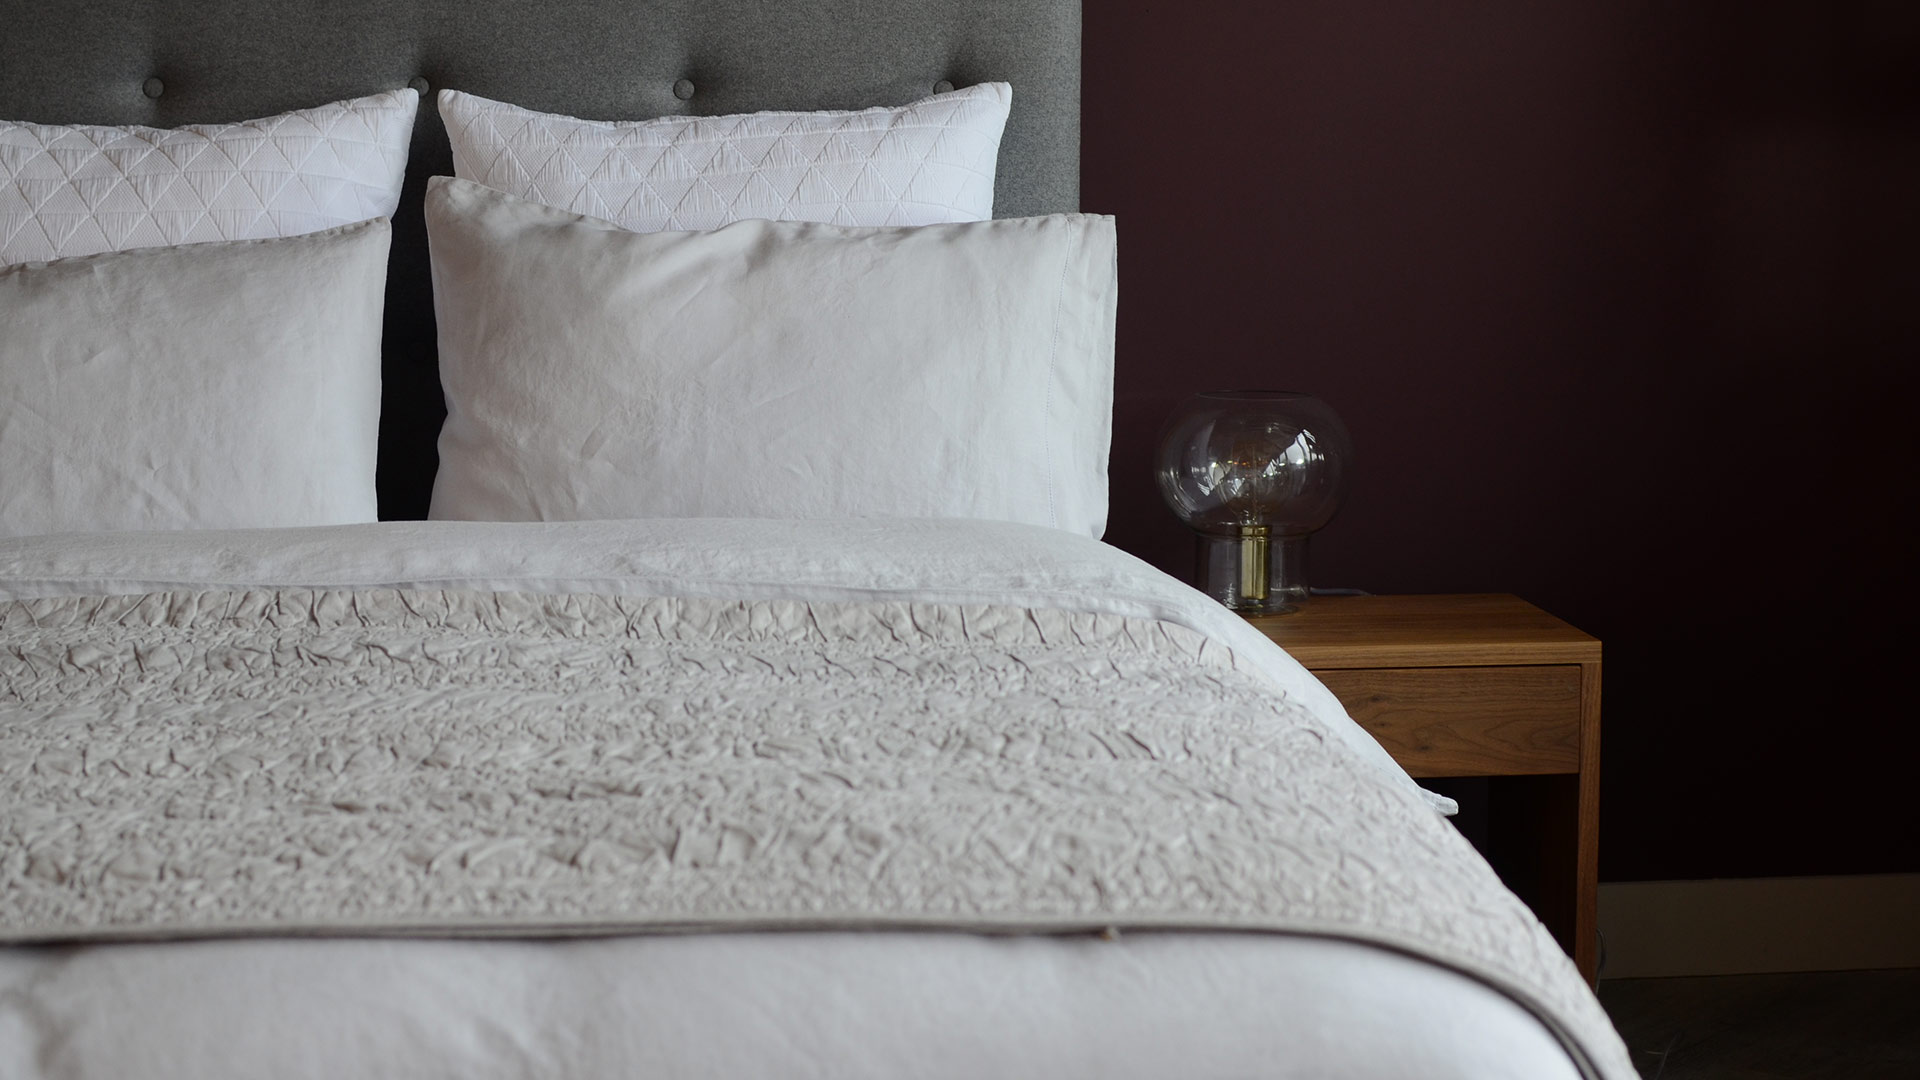 Shop for bedding, duvets, pillows, fine egyptian cotton, bath towels, curtains, blinds and more! Over products, FREE UK delivery available.